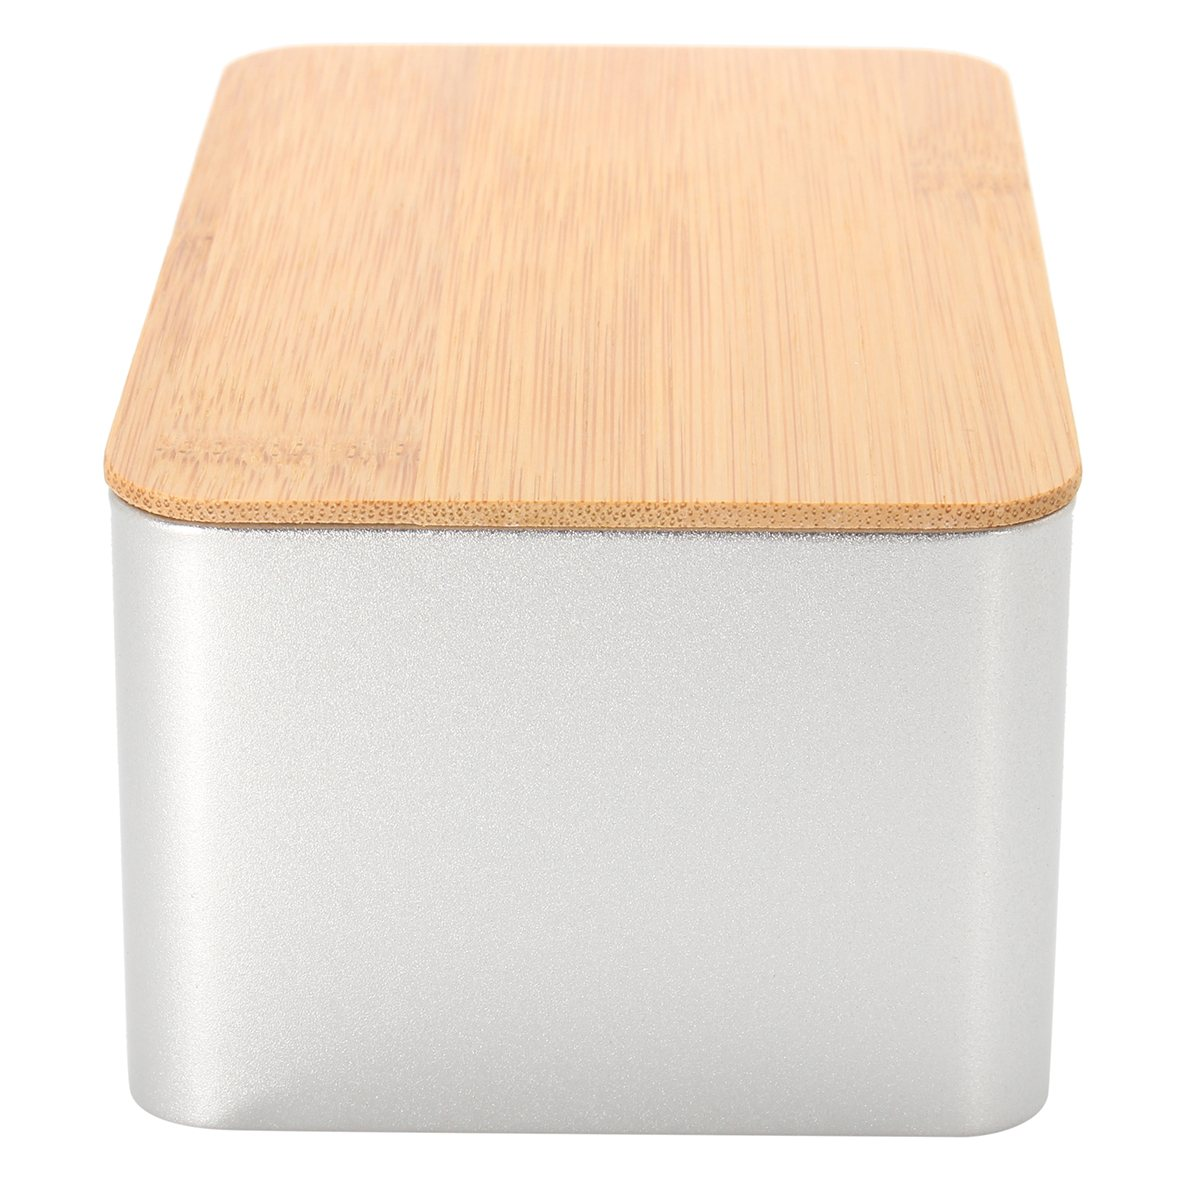 Kitchen Metal Storage Box With Bamboo Lid Bins Bread Sugar Boxes Tea Herb Stoarge Holder Food Containers Organizer Supplies 4